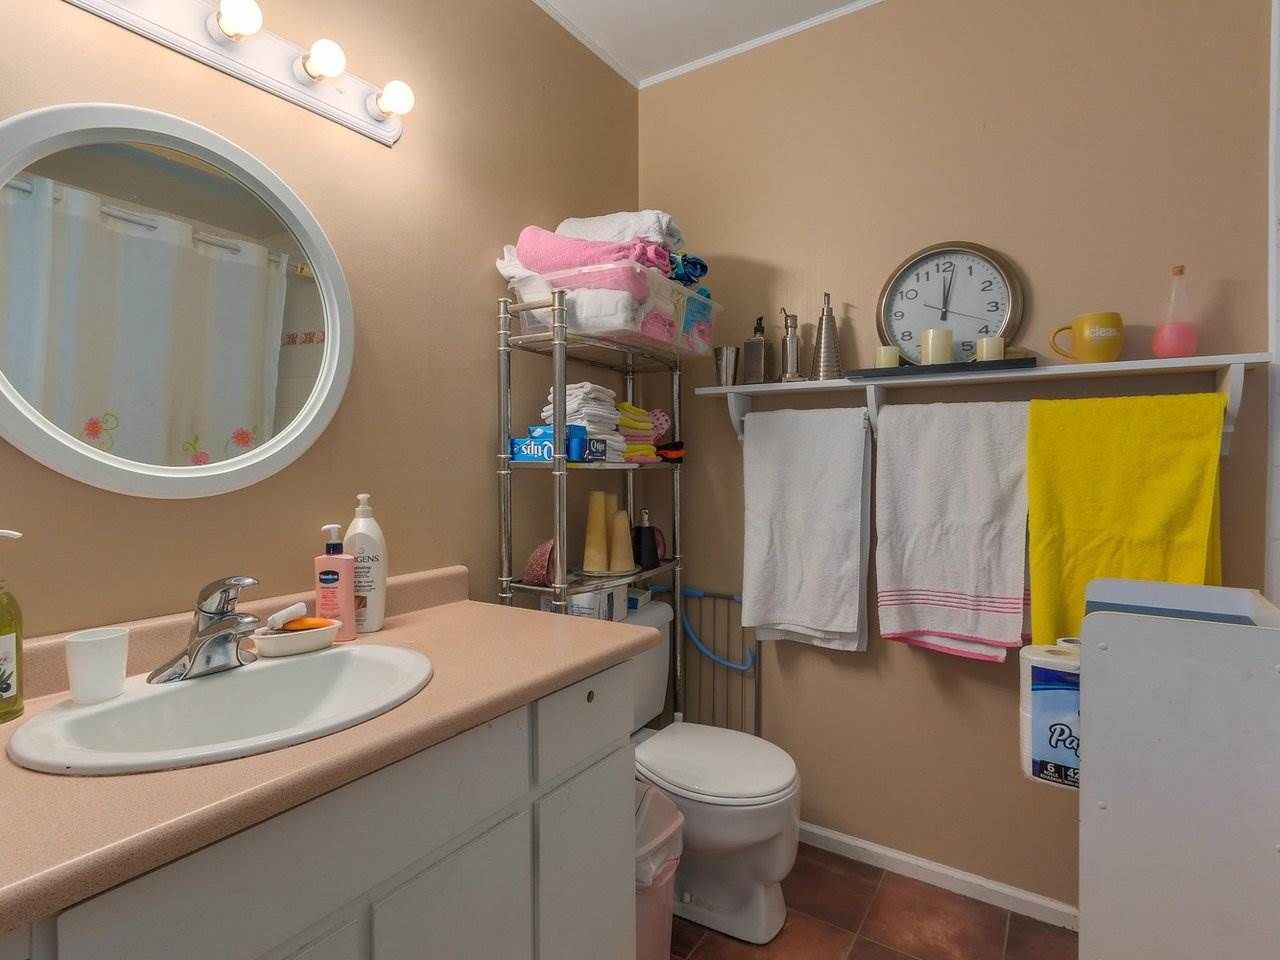 """Photo 11: Photos: 15 1811 PURCELL Way in North Vancouver: Lynnmour Condo for sale in """"LYNNMOUR SOUTH"""" : MLS®# R2276321"""